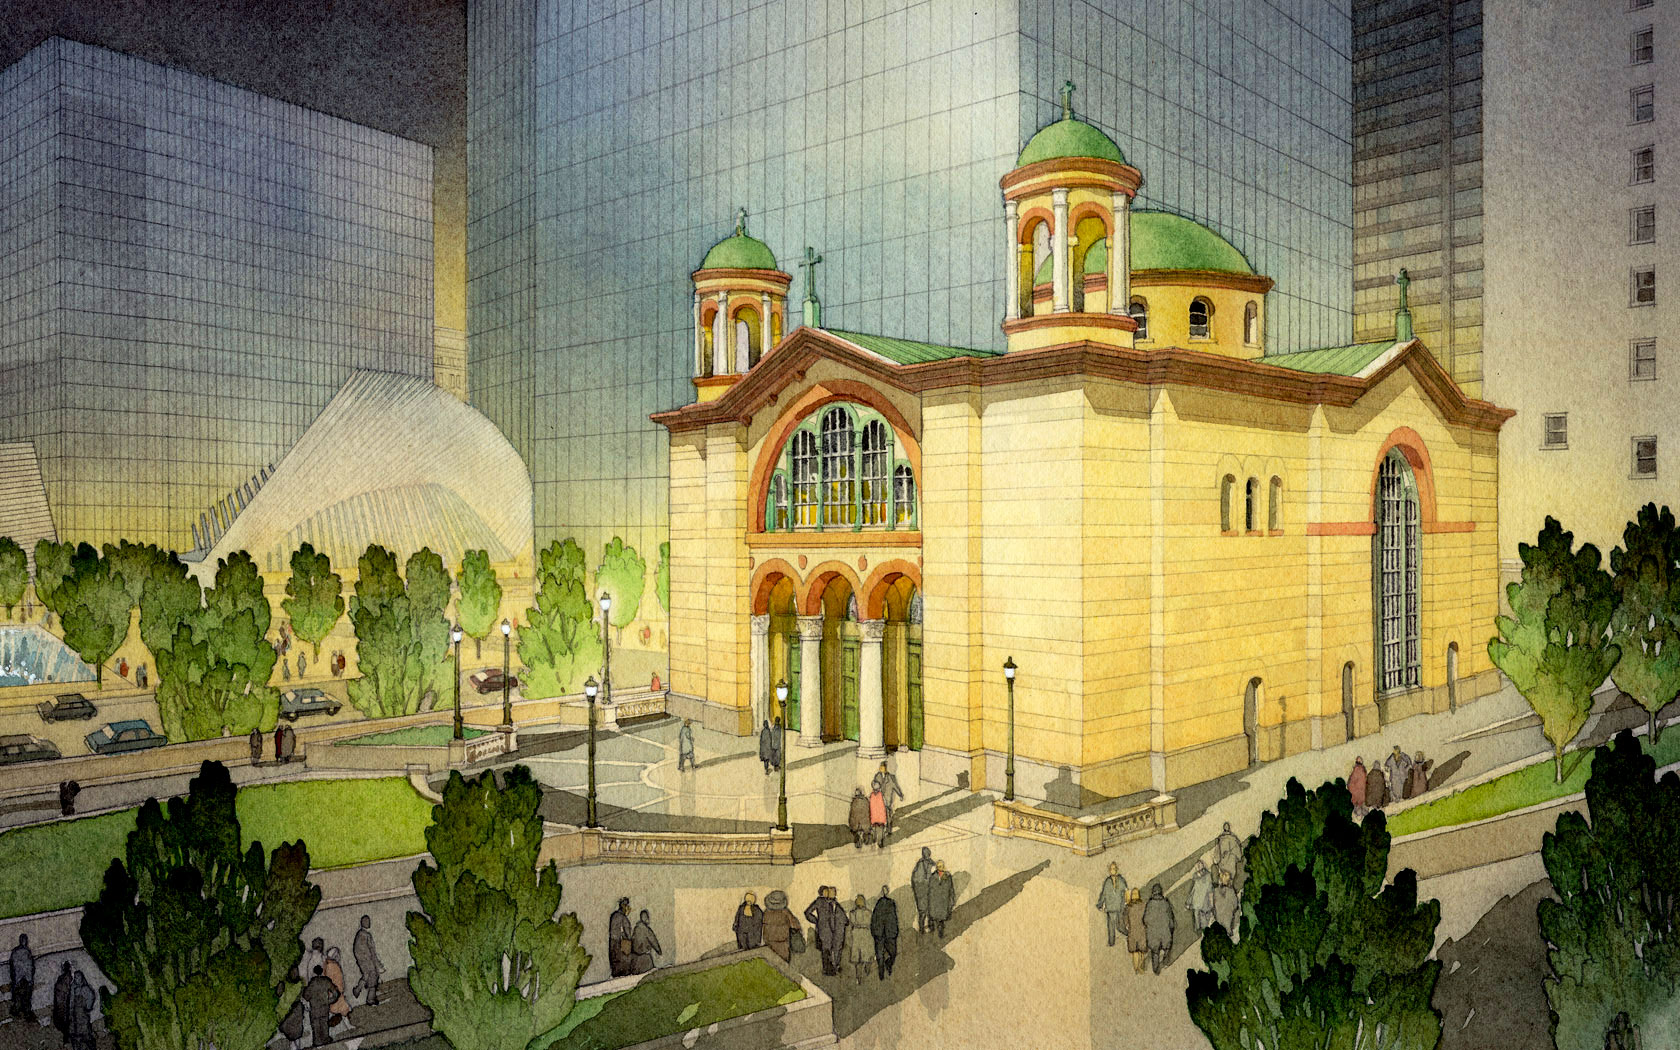 ST NICHOLAS GREEK ORTHODOX CHURCH, New York, New York. Located adjacent to the World Trade Center in New York City, St. Nicholas Greek Orthodox Church was destroyed in the September 11, 2001 terrorist attacks, the only house of worship to be destroyed. Duncan Stroik was one of eight architects invited to submit a design for the private design competition. The goal of the design was for this church to be an expression of faith and a memorial for the fallen.